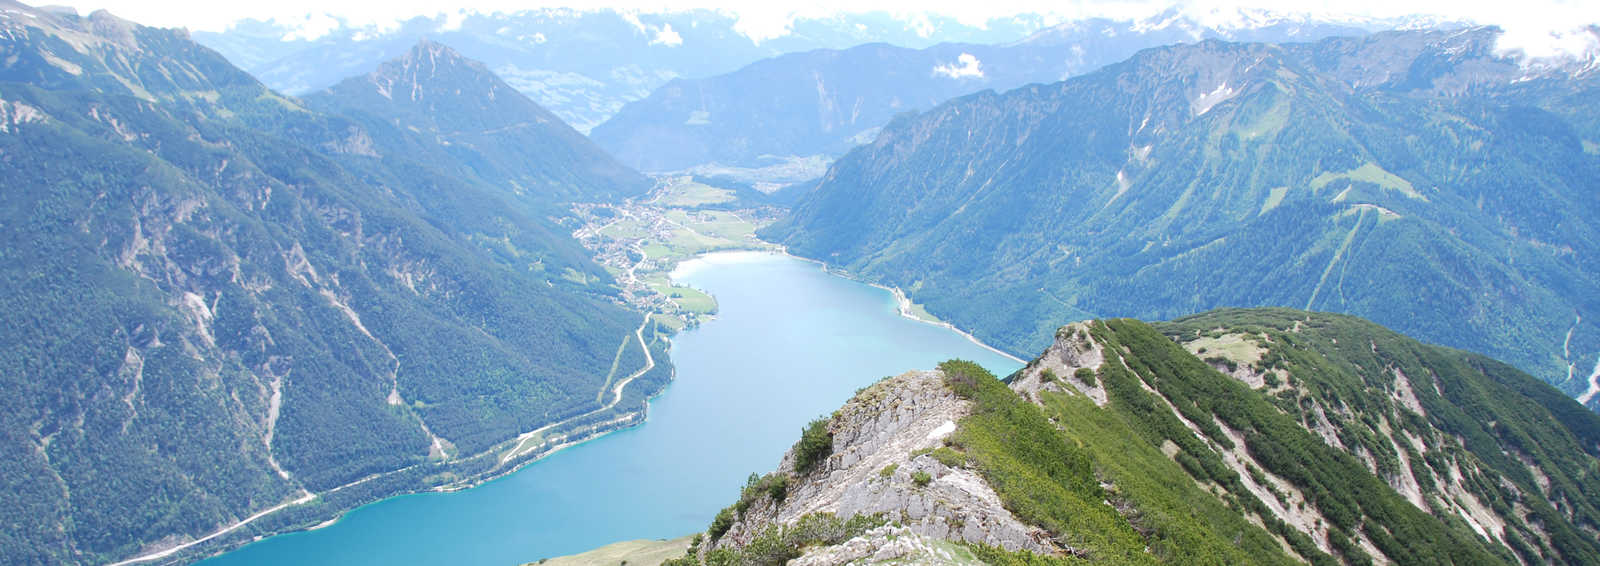 View of Achensee